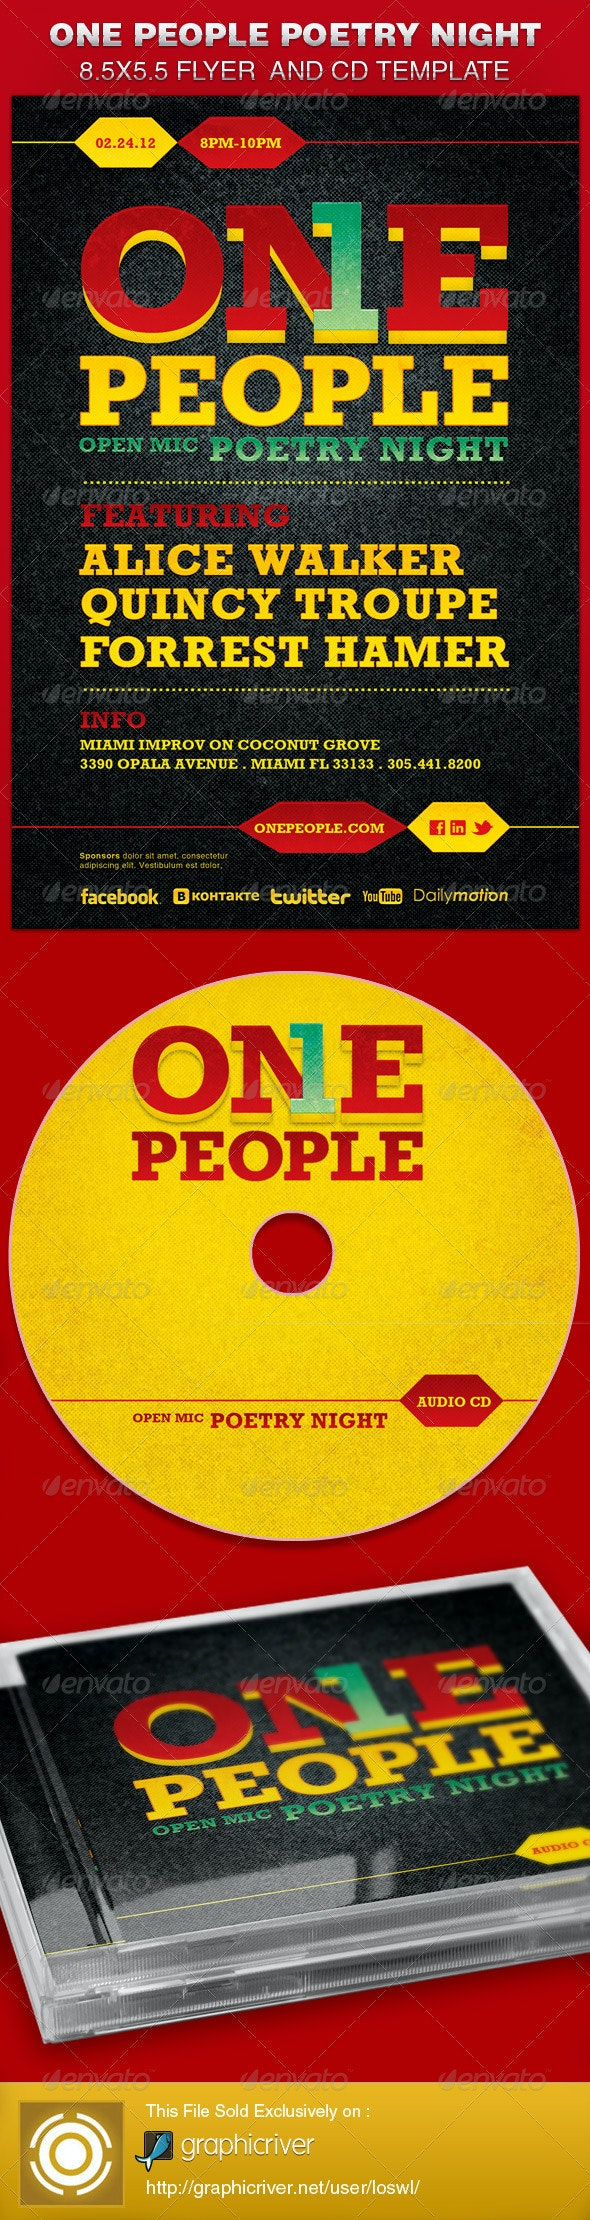 One People Poetry Night Flyer and CD Template - Clubs & Parties Events